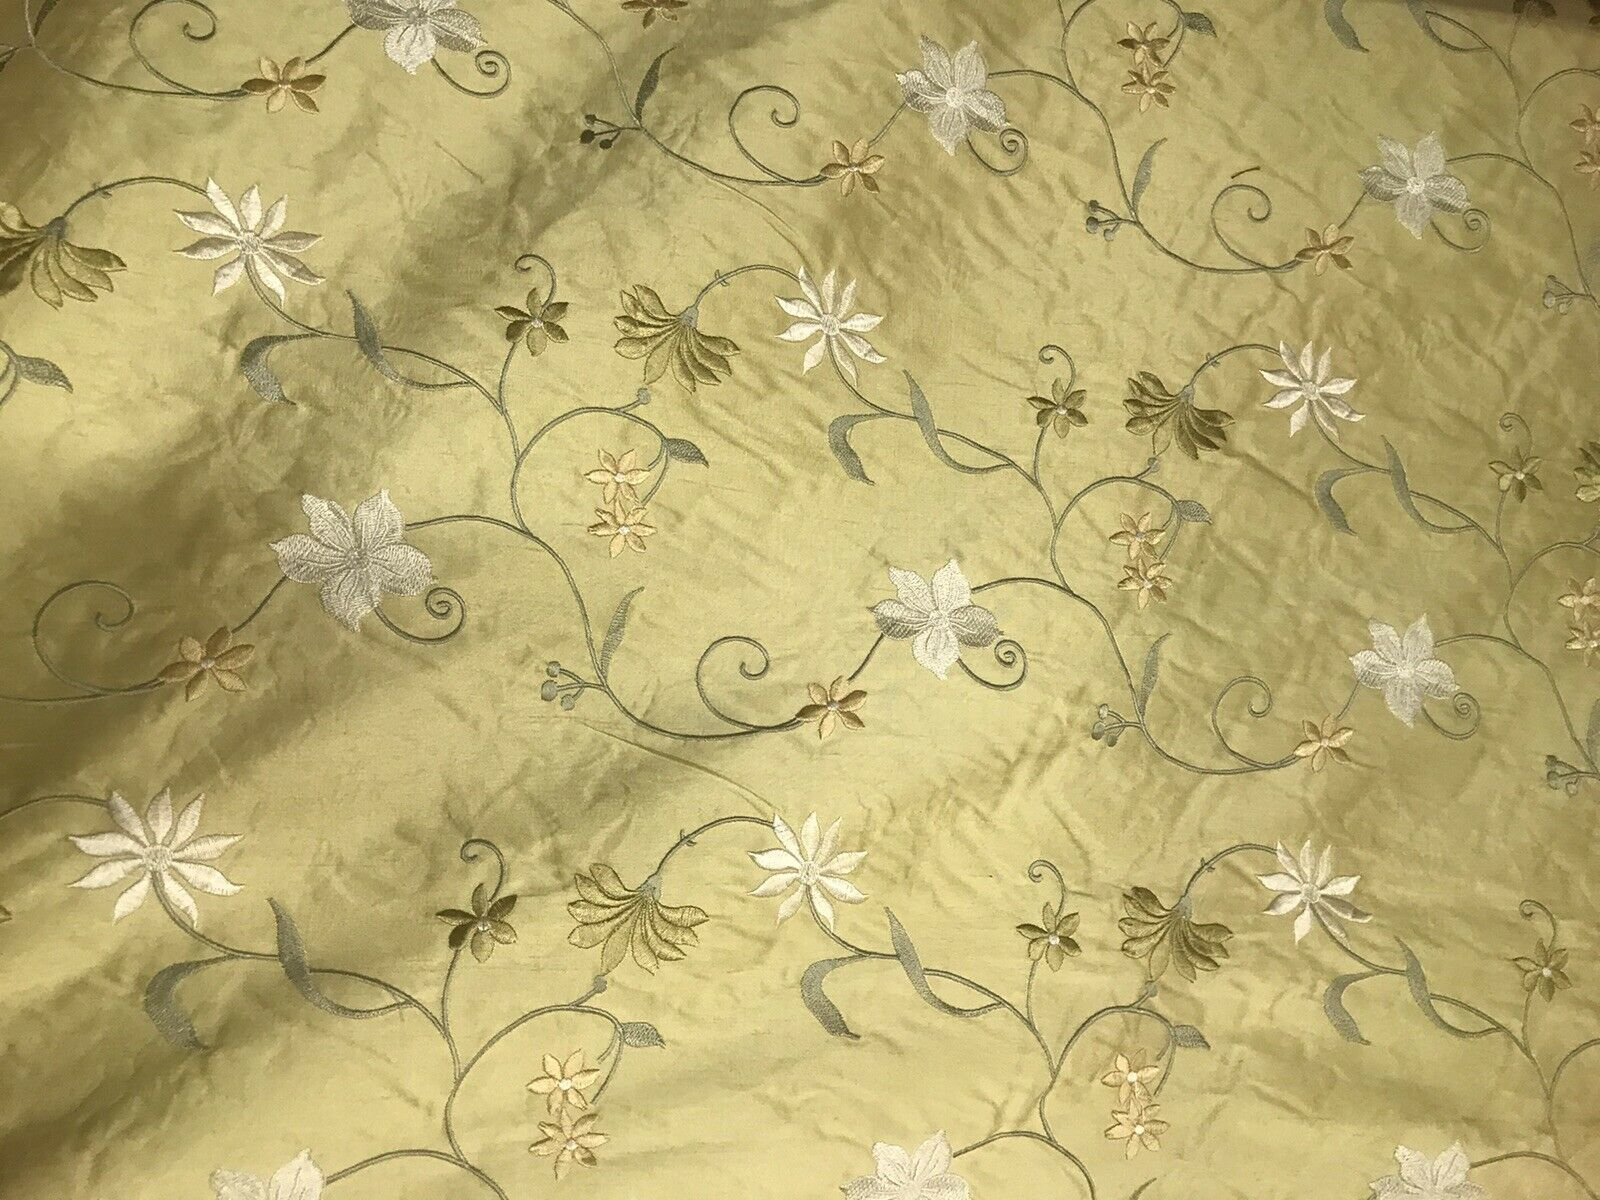 1 Yard Remnant- 100% Silk Dupioni Yellow Embroidered Floral Fabric GFSUY0001